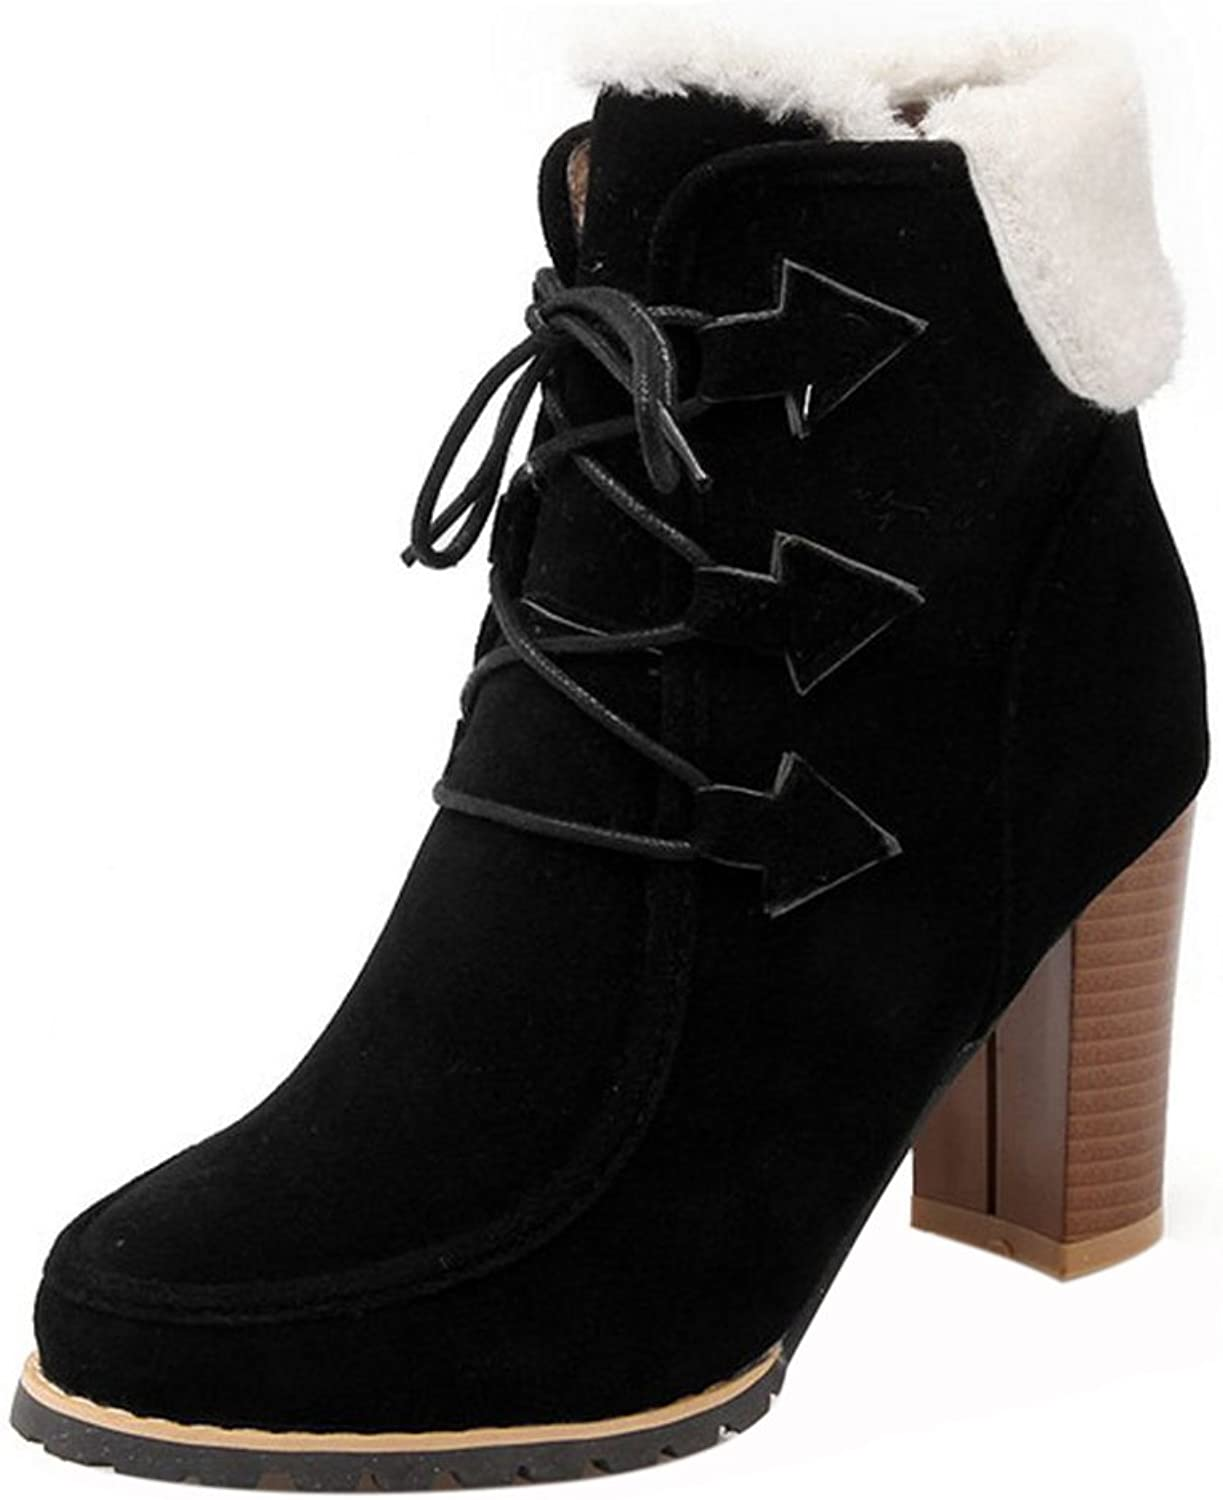 RizaBina Women Warm Block High Heel Ankle Boots with Lace Up